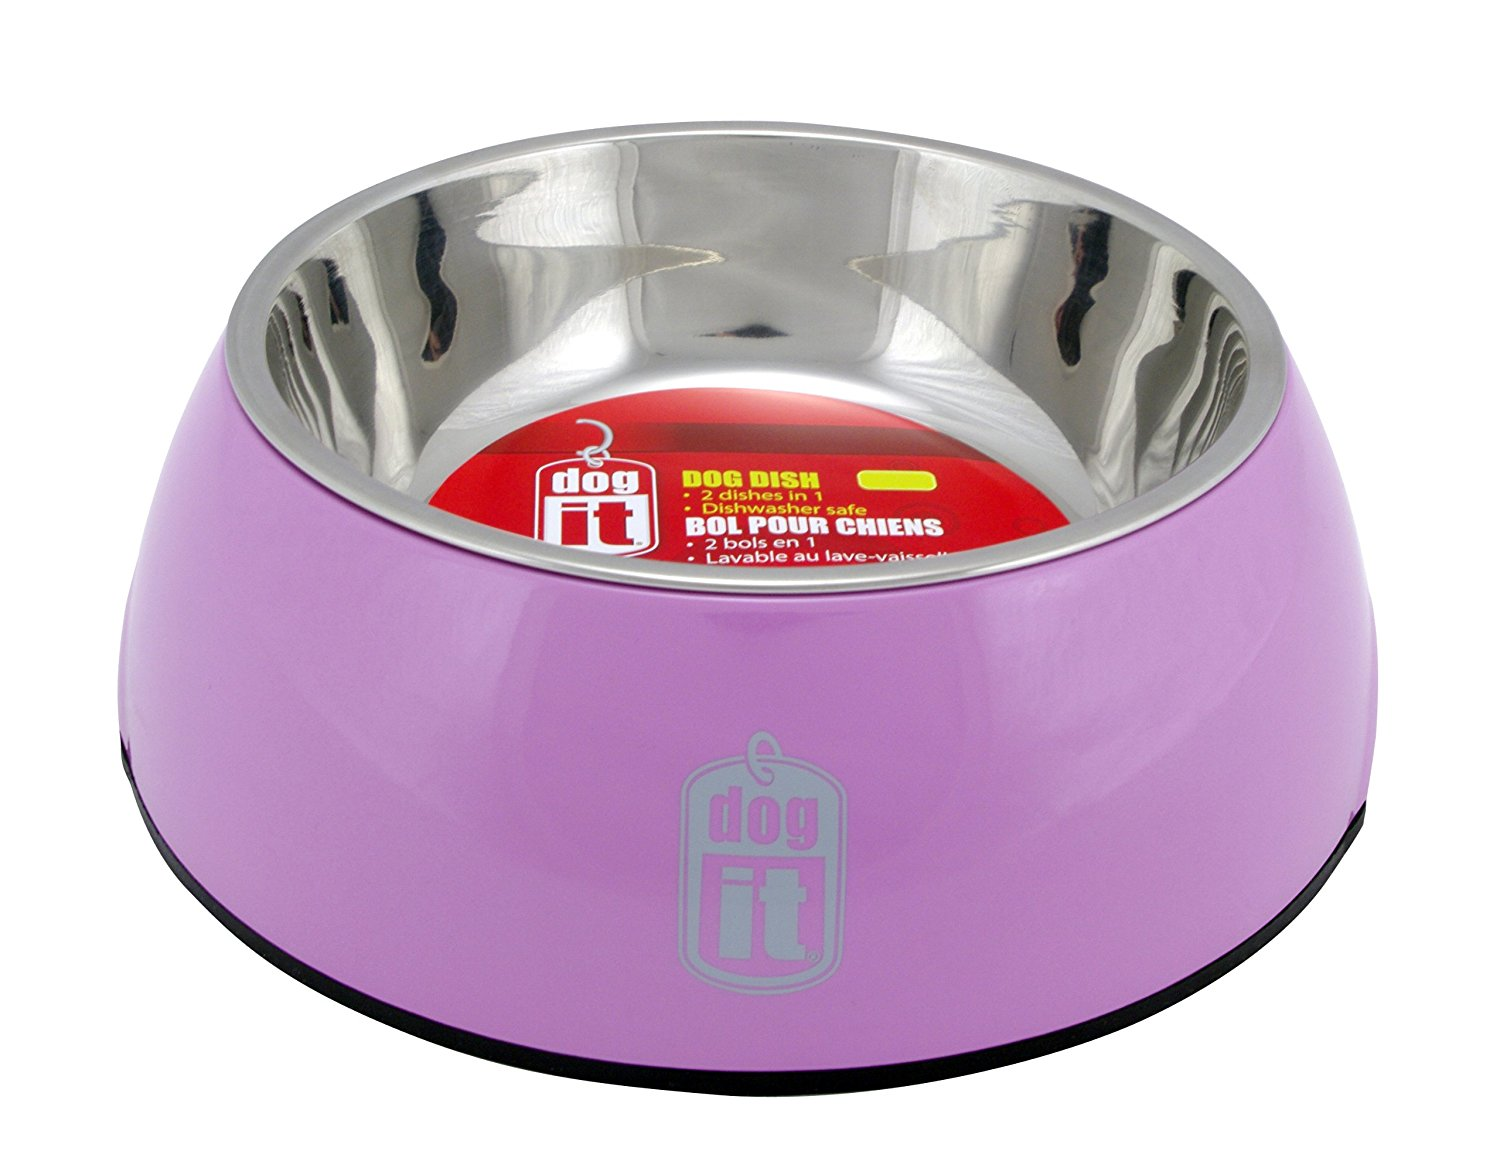 Dogit 2 in Durable Bowl with Stainless Steel Insert Large 1.6L Pink